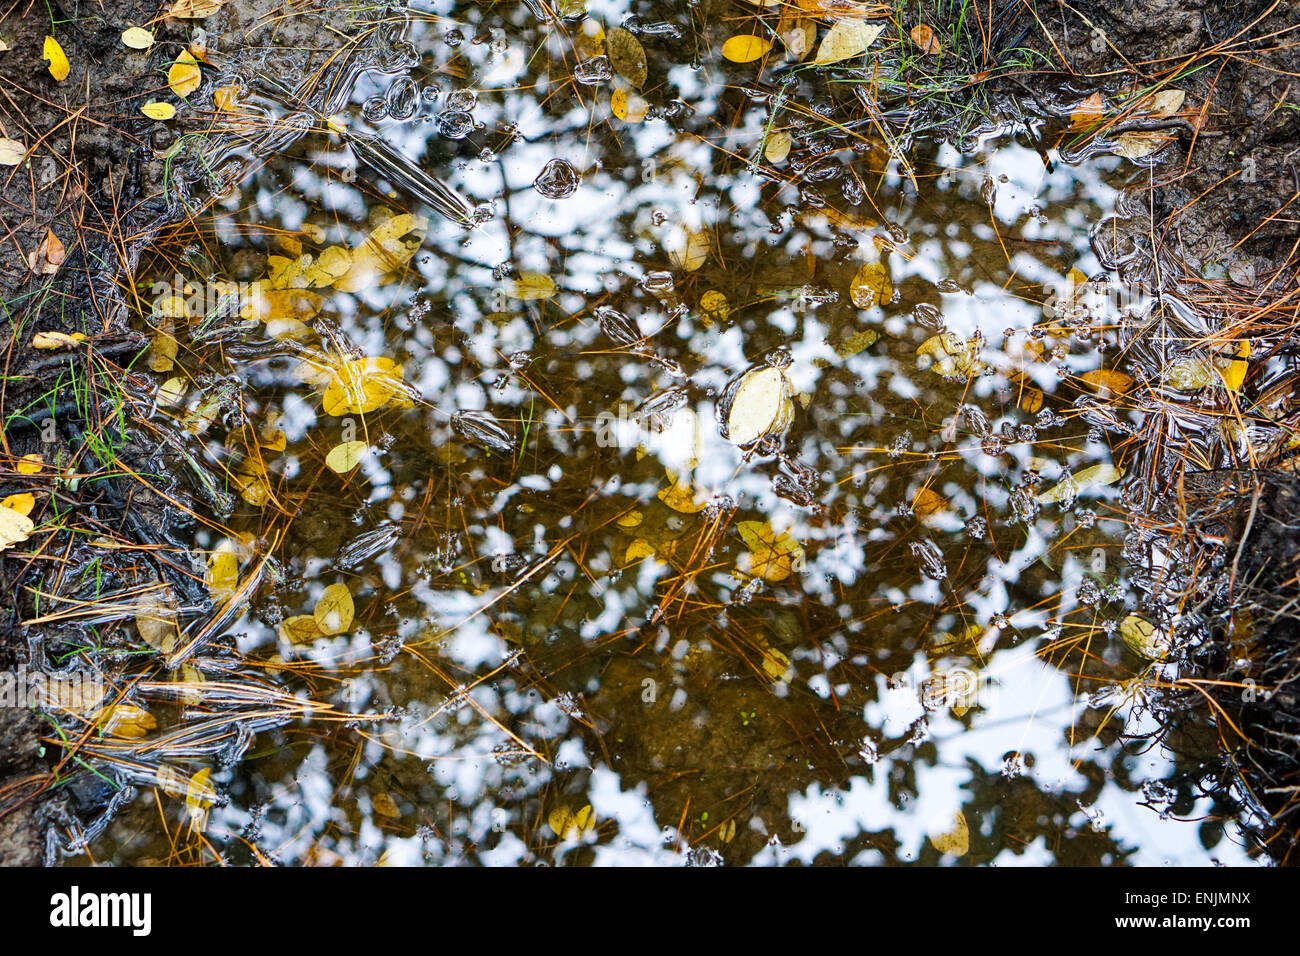 Autumn Leaves in puddle with pine straw and reflection of sky and trees. - Stock Image